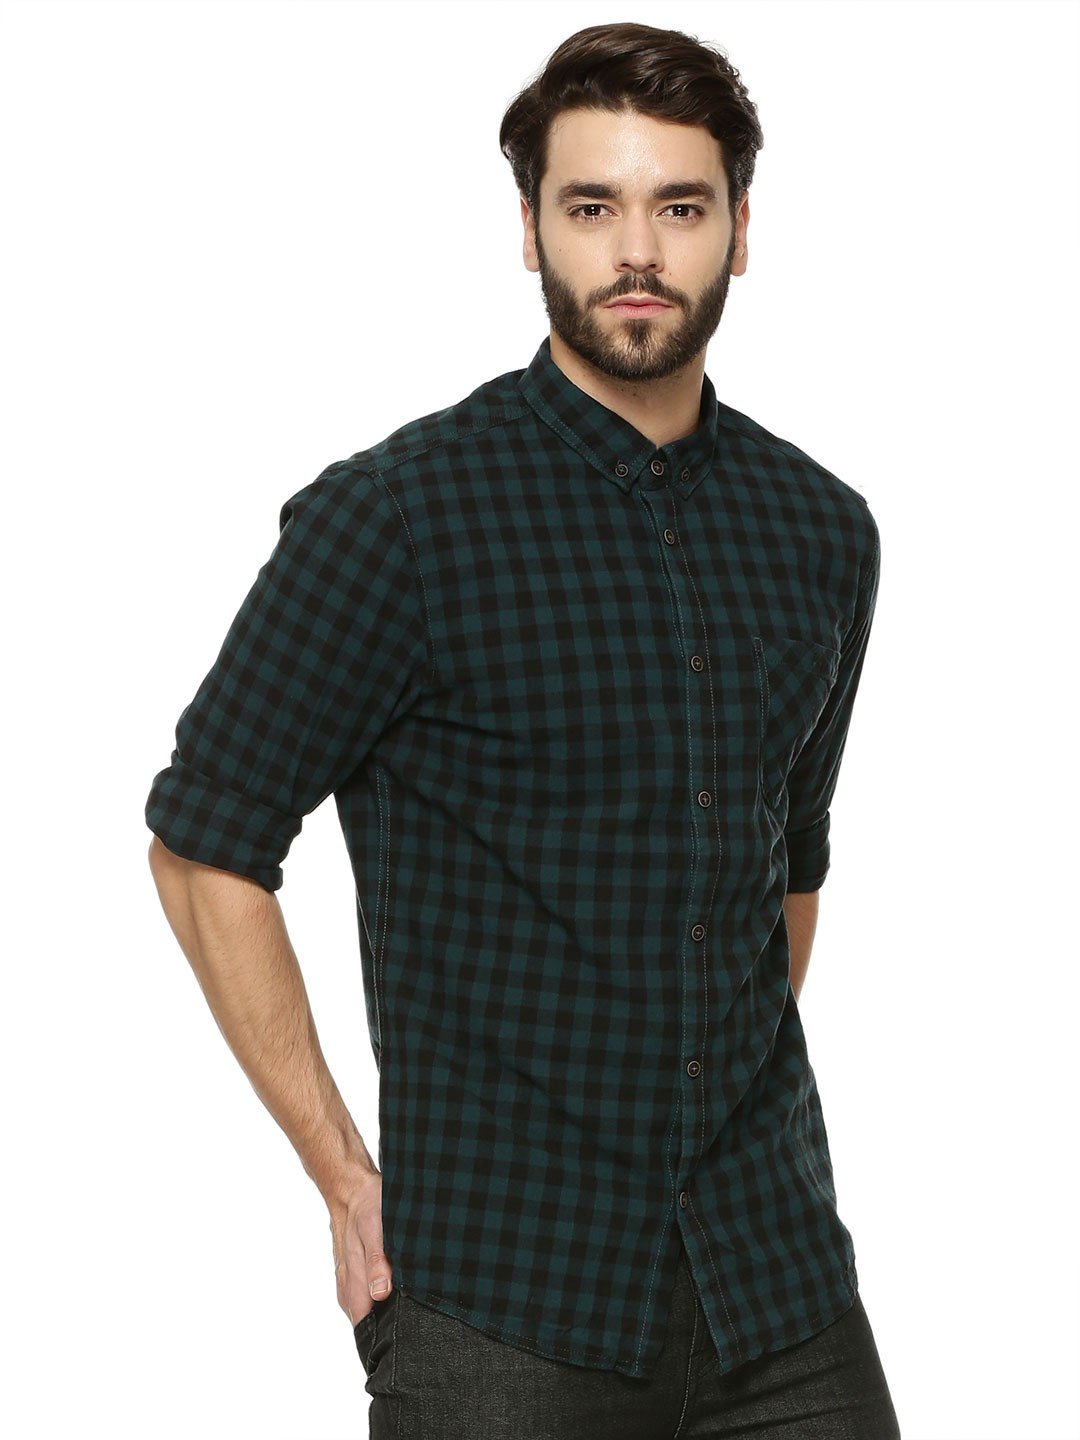 Buy SOLID Small Check Shirt For Men - Men's Green/Multi Casual ...